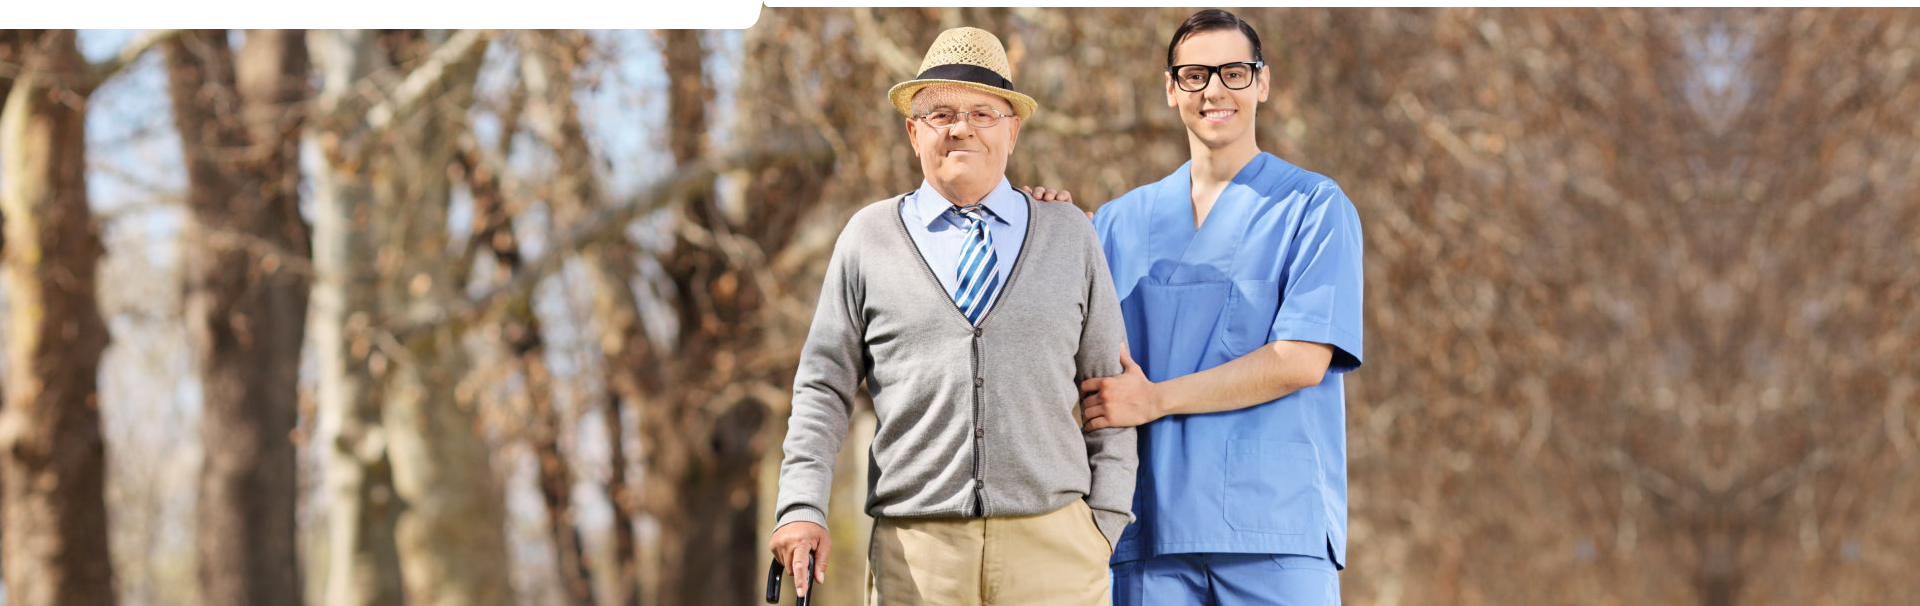 A caregiver accompanying an elderly for a walk outside